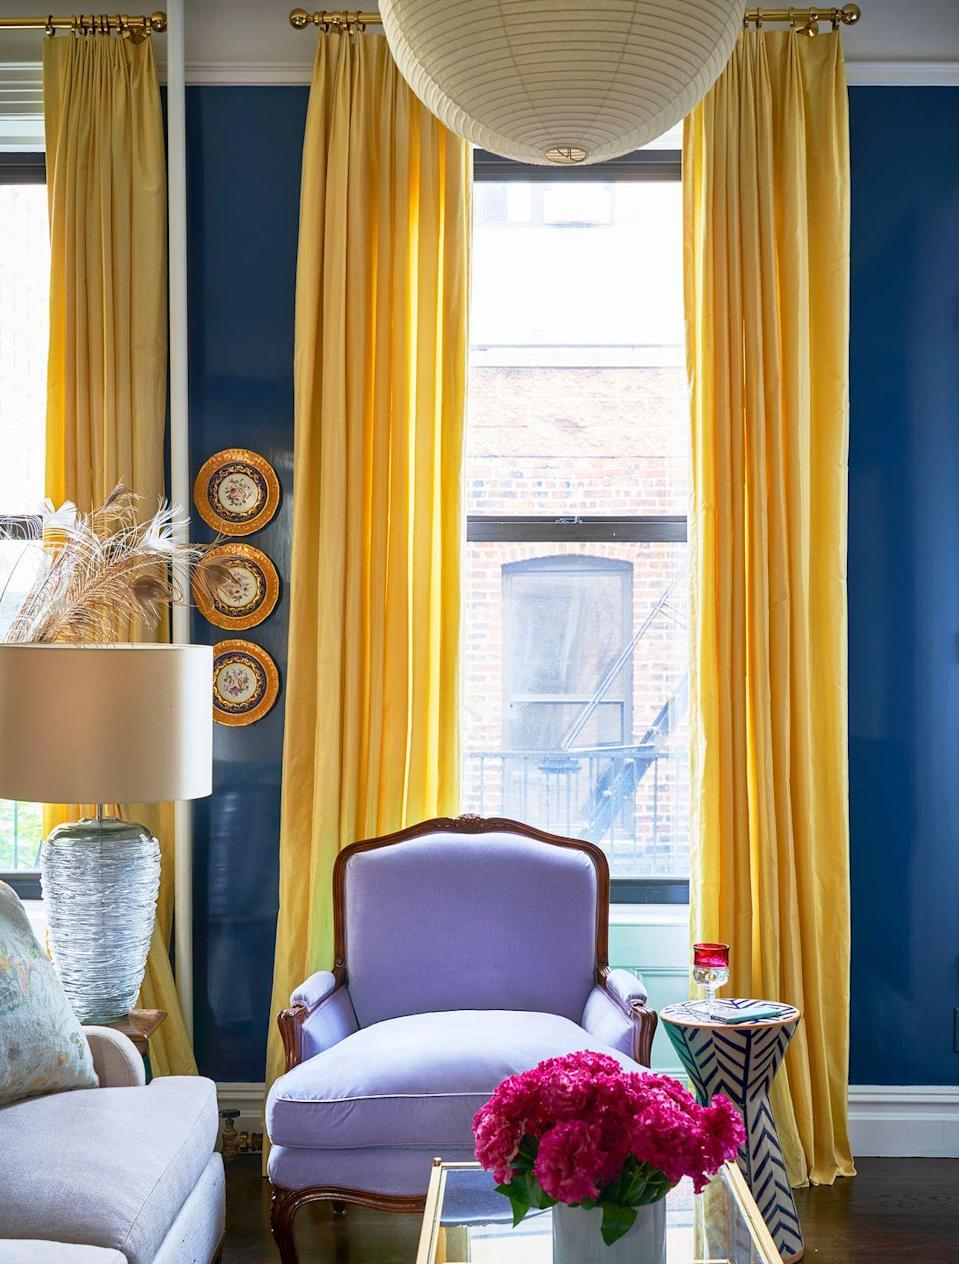 """<p>The deep blue paint alone is a bold color choice for this azure living room by <a href=""""https://www.housebeautiful.com/design-inspiration/house-tours/a26767482/kate-reid-colorful-manhattan-apartment/"""" rel=""""nofollow noopener"""" target=""""_blank"""" data-ylk=""""slk:Kate Reid"""" class=""""link rapid-noclick-resp"""">Kate Reid</a>, but the high-gloss finish adds some extra punch. It's basically the color of wanderlust right in your own home: It'll make you feel like you're on vacation, even if the closest you're getting to an island escape is your laptop's screensaver (sigh).</p>"""